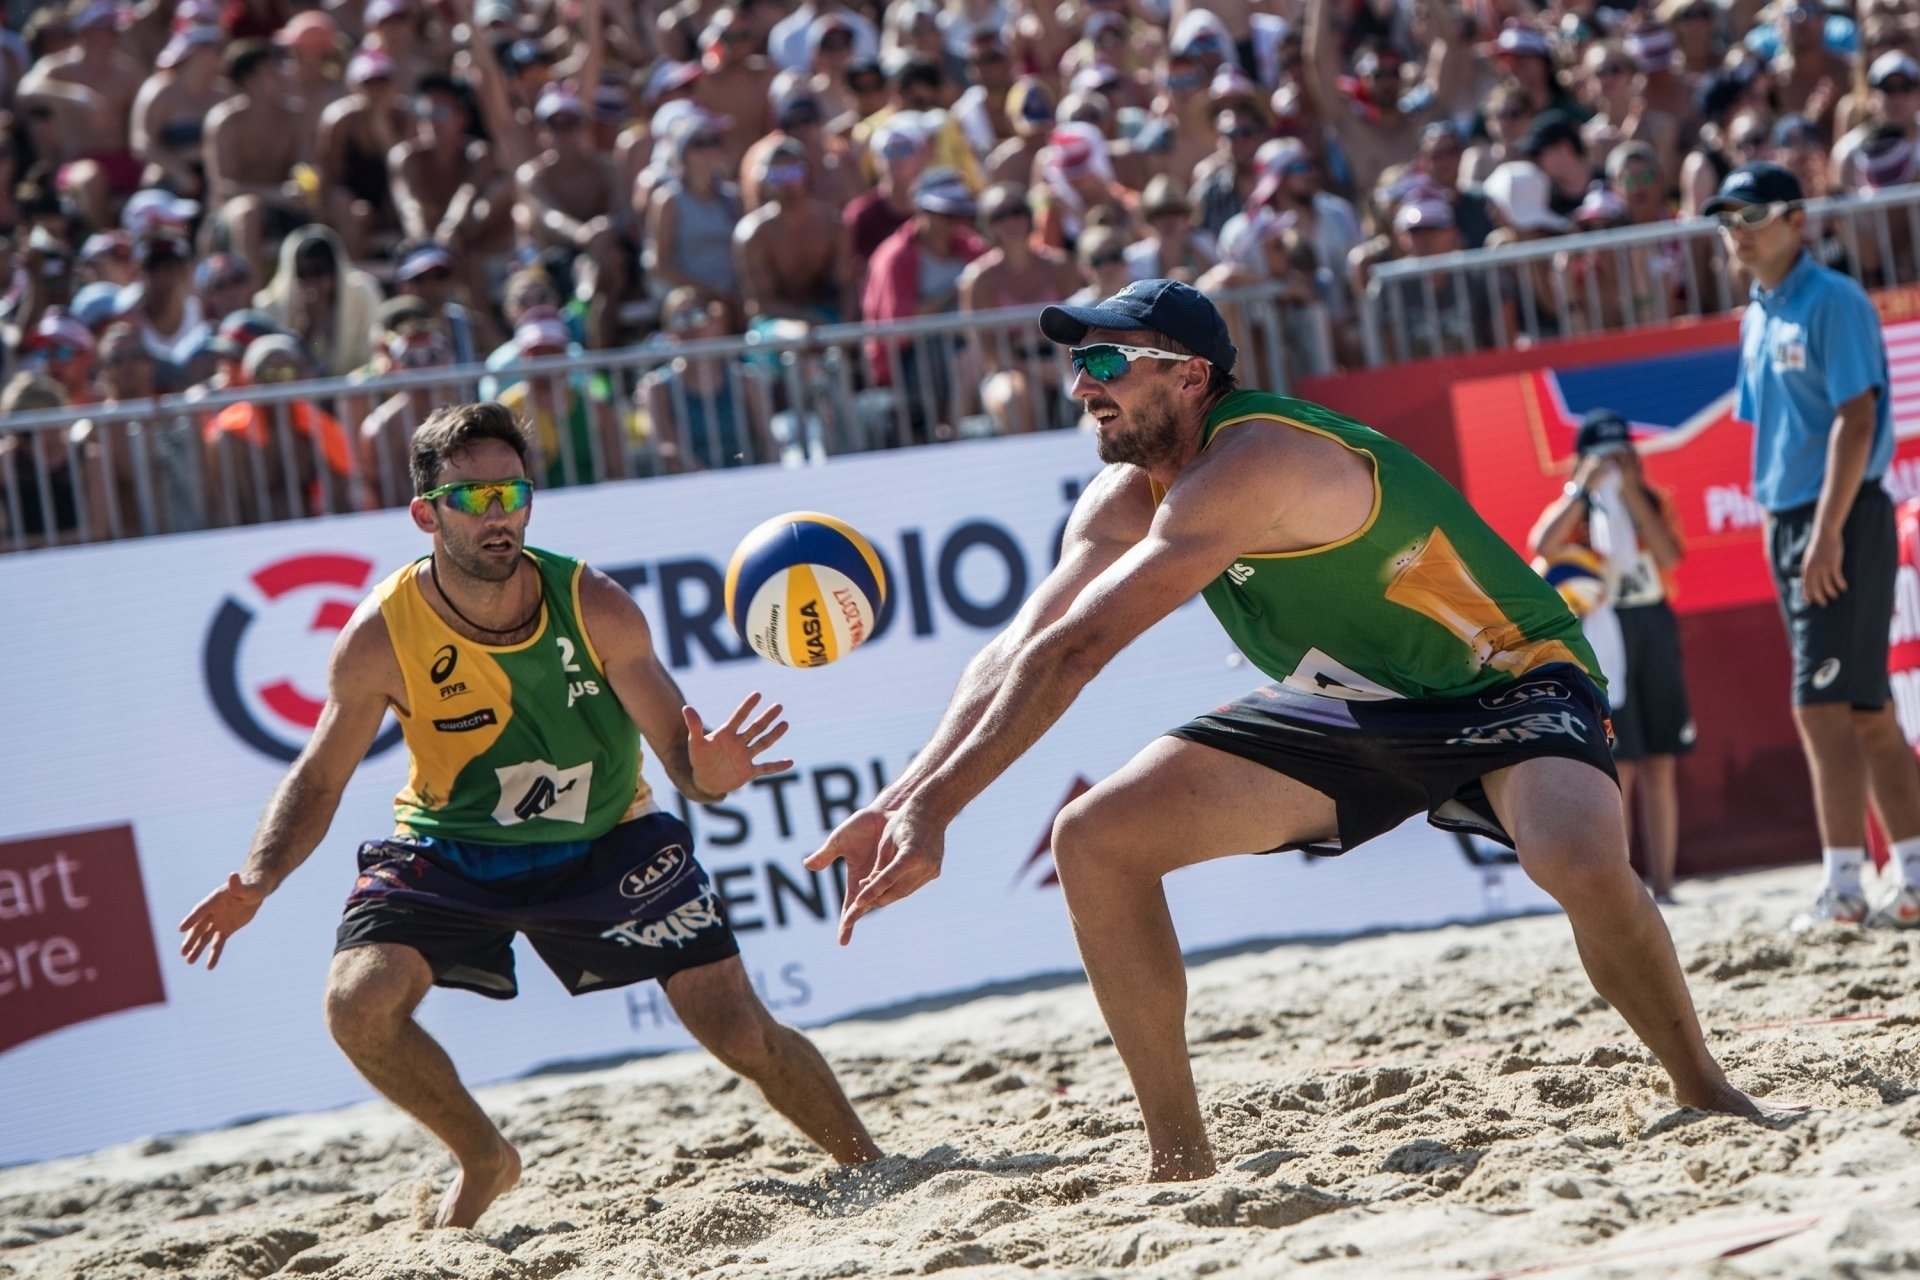 Damien Schumann (left) and Chris McHugh are Australia's big hopes at Gold Coast